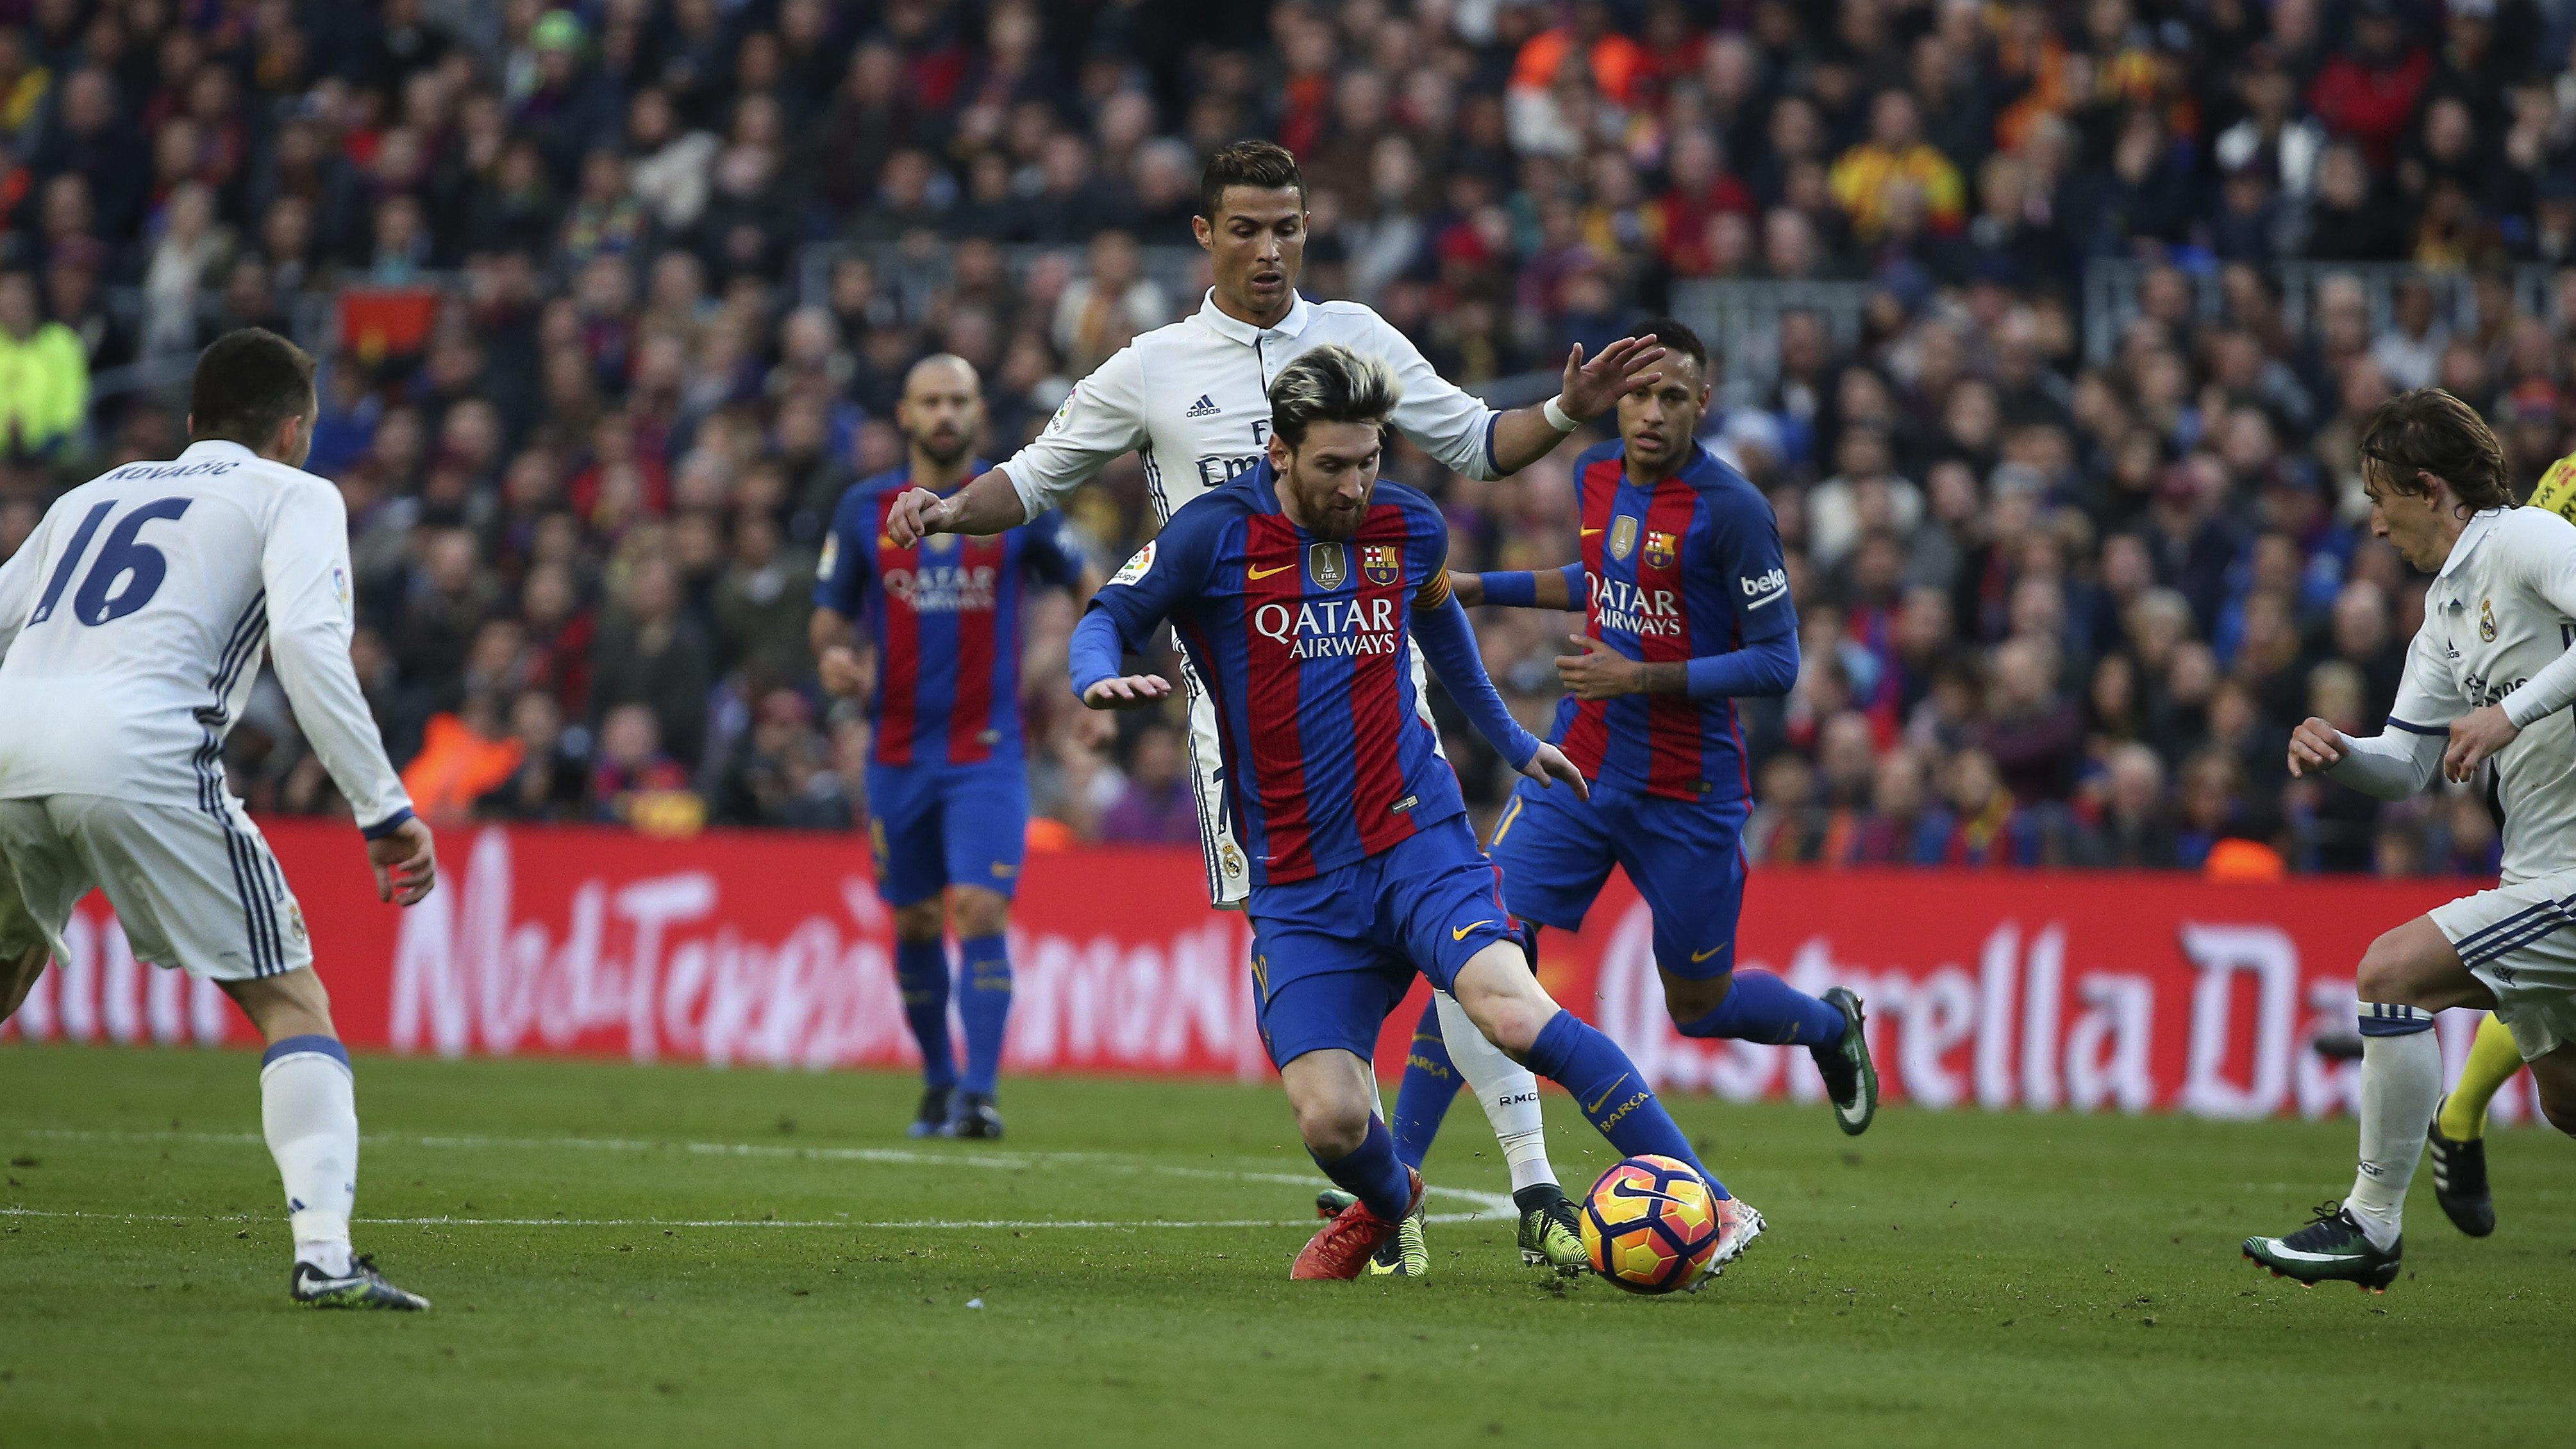 MWC 2018: Spanish soccer's LaLiga is making TV games look